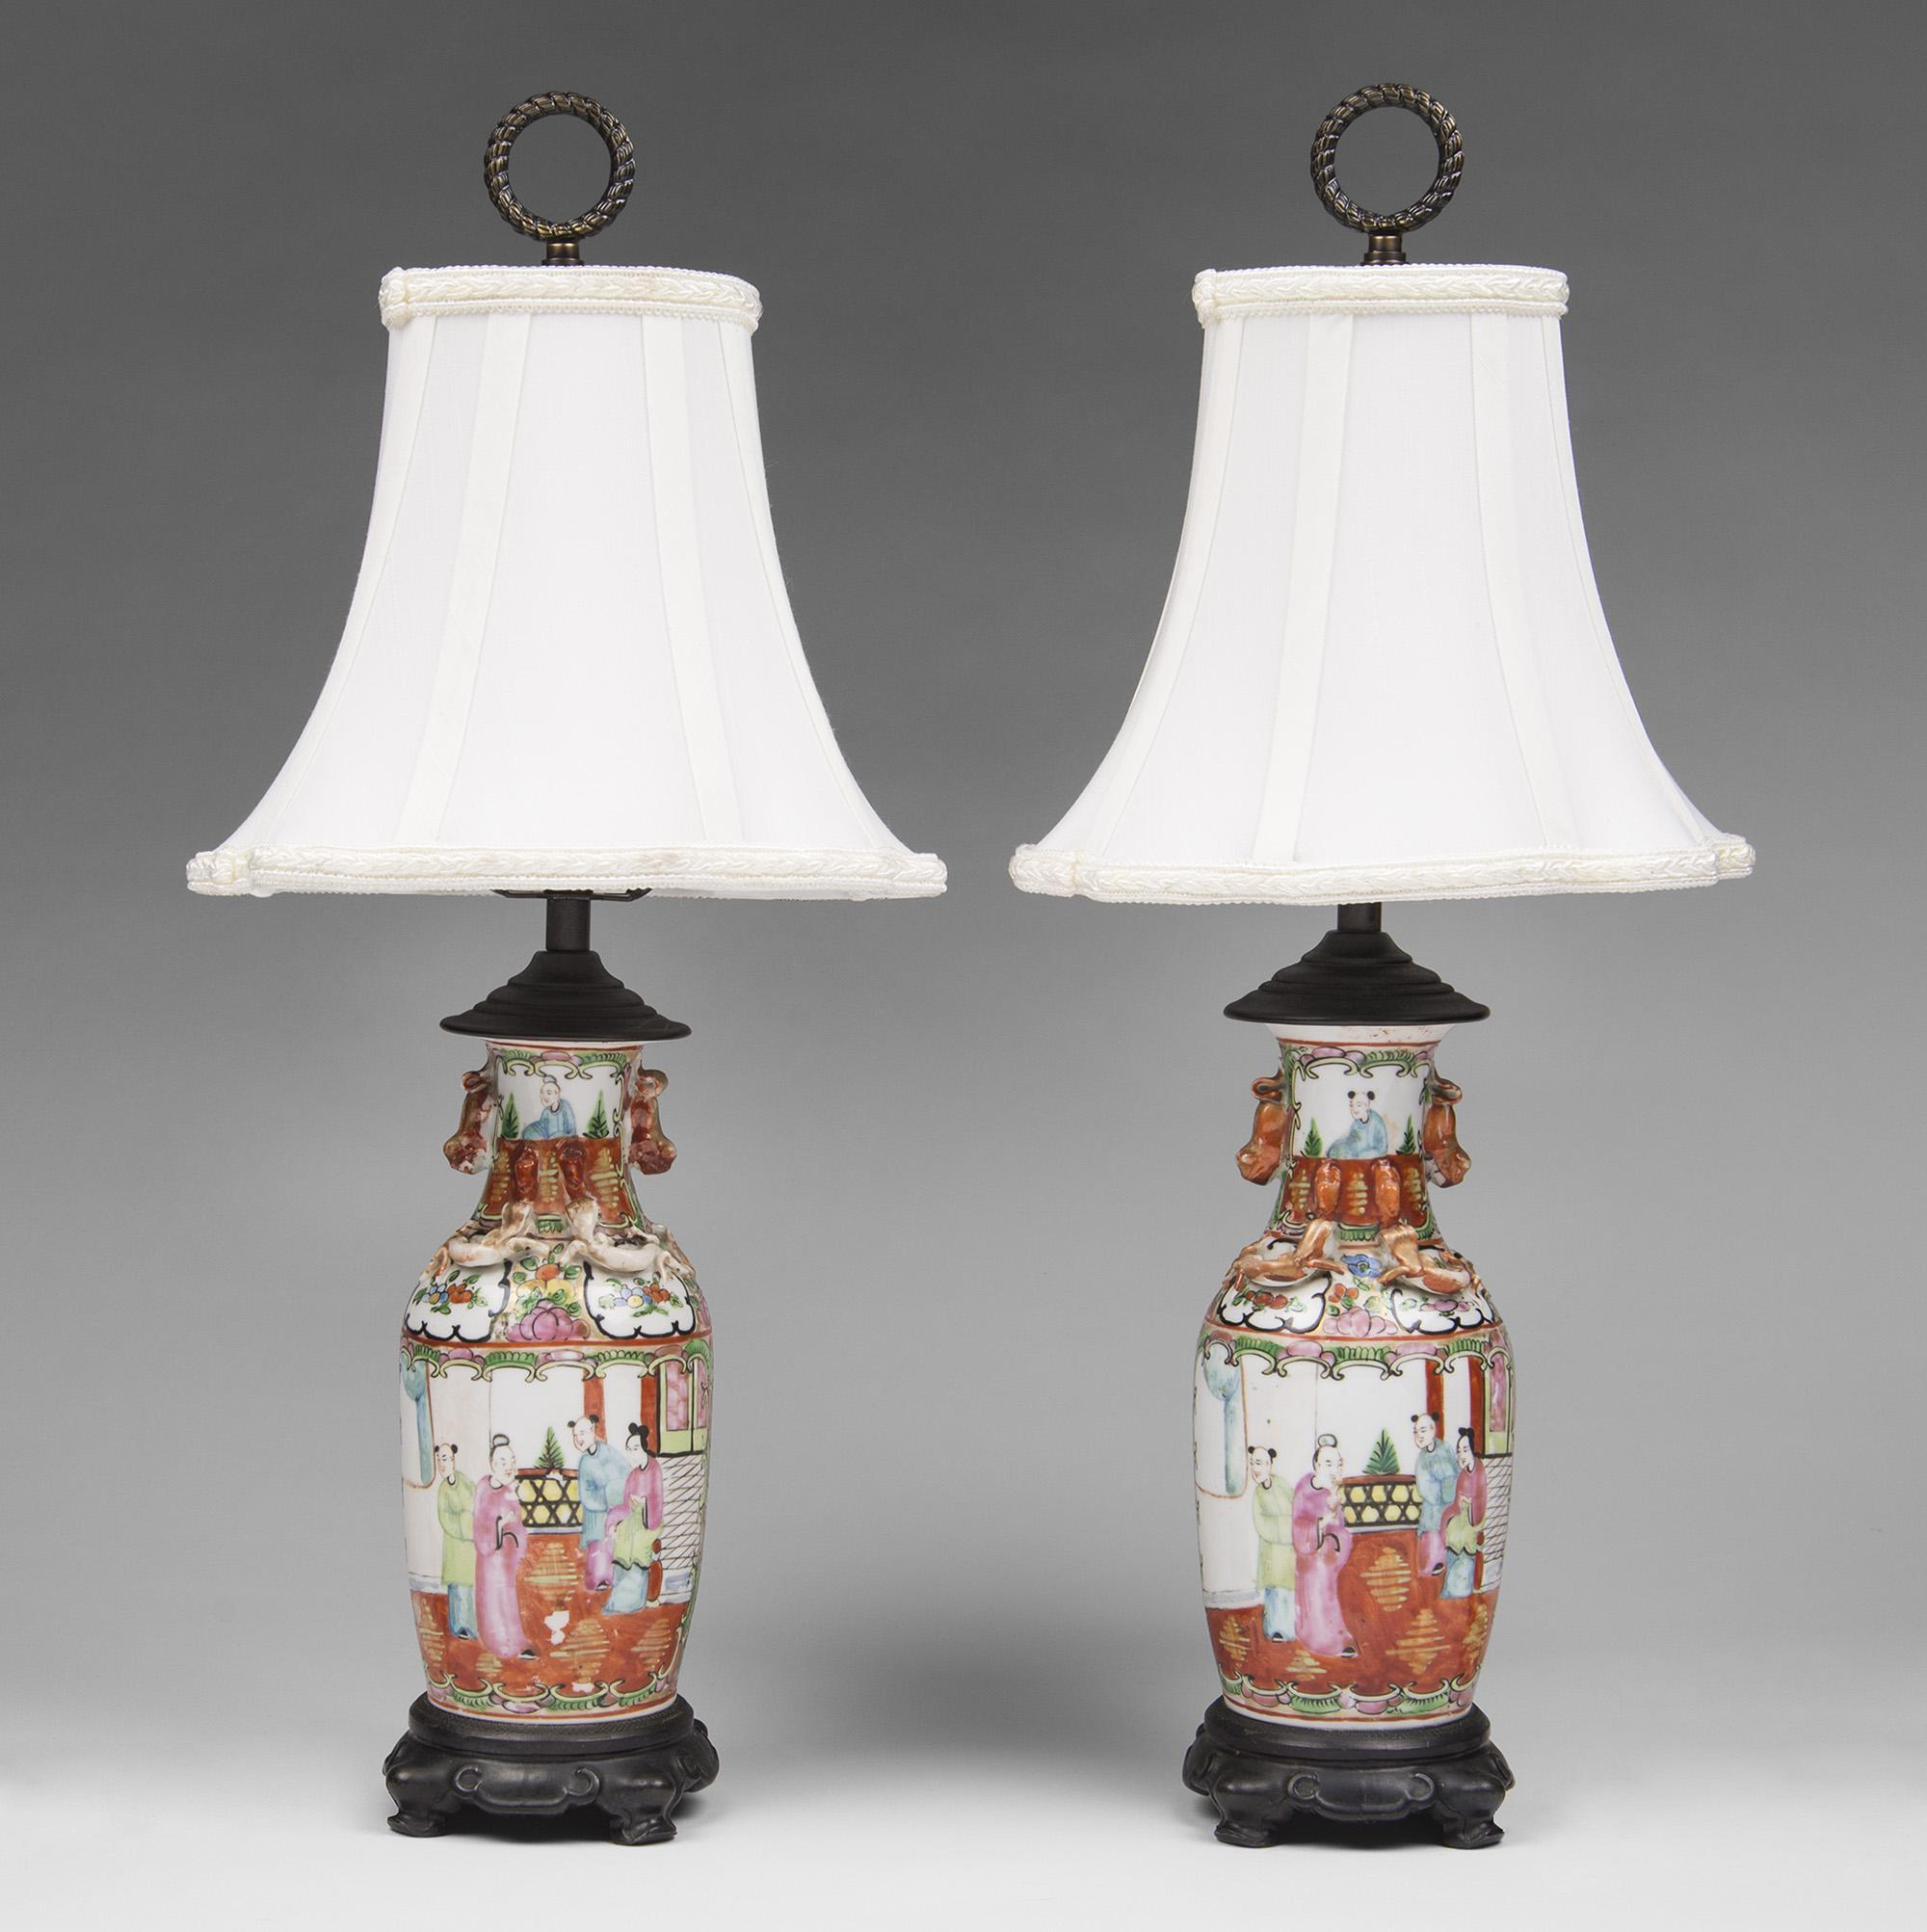 Pair of Matching 19th C. Rose Medallion Chinese Export Lamps